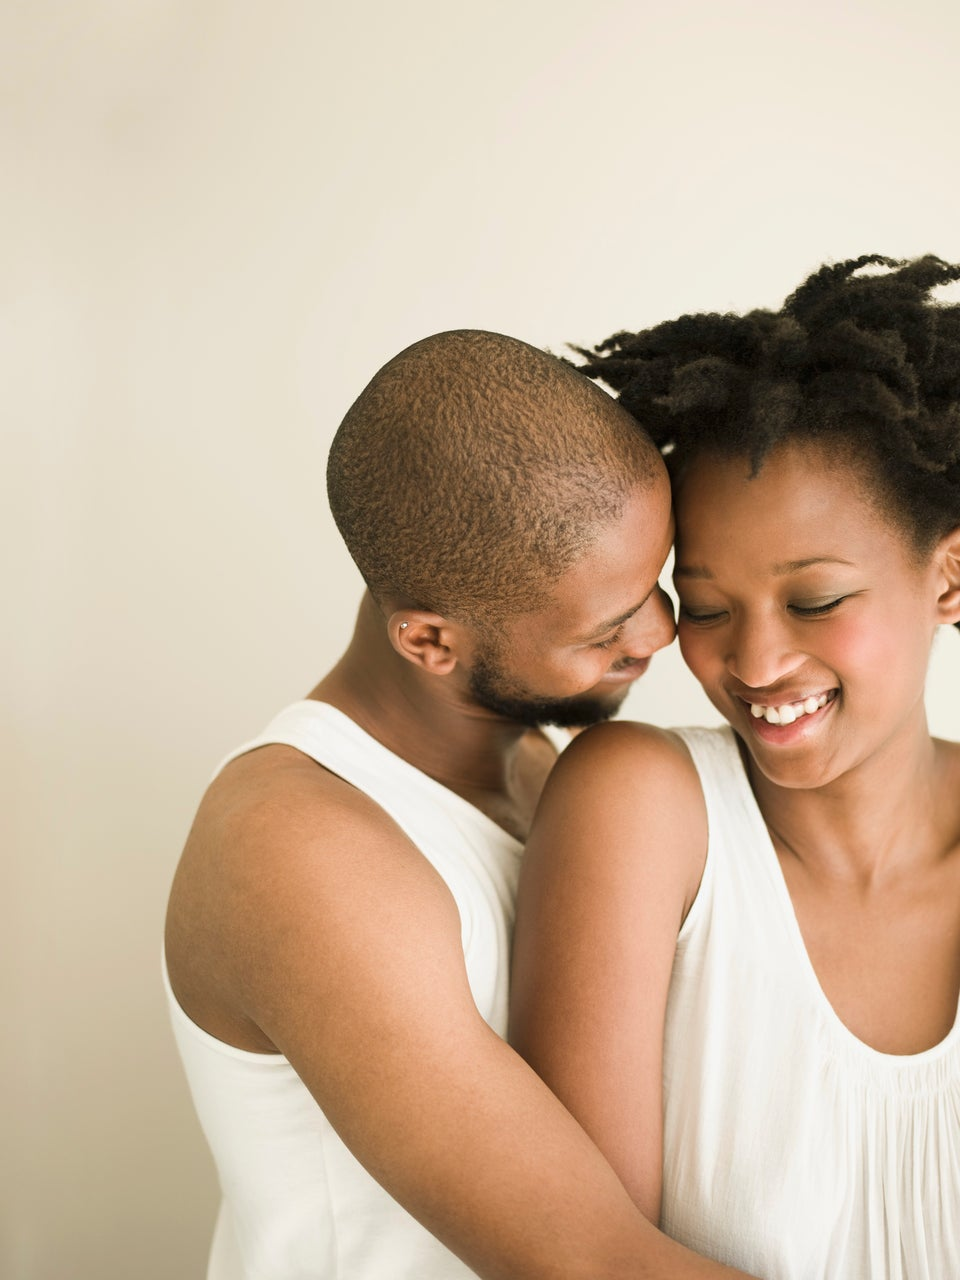 6 Things Guys Think About Love That May Surprise You